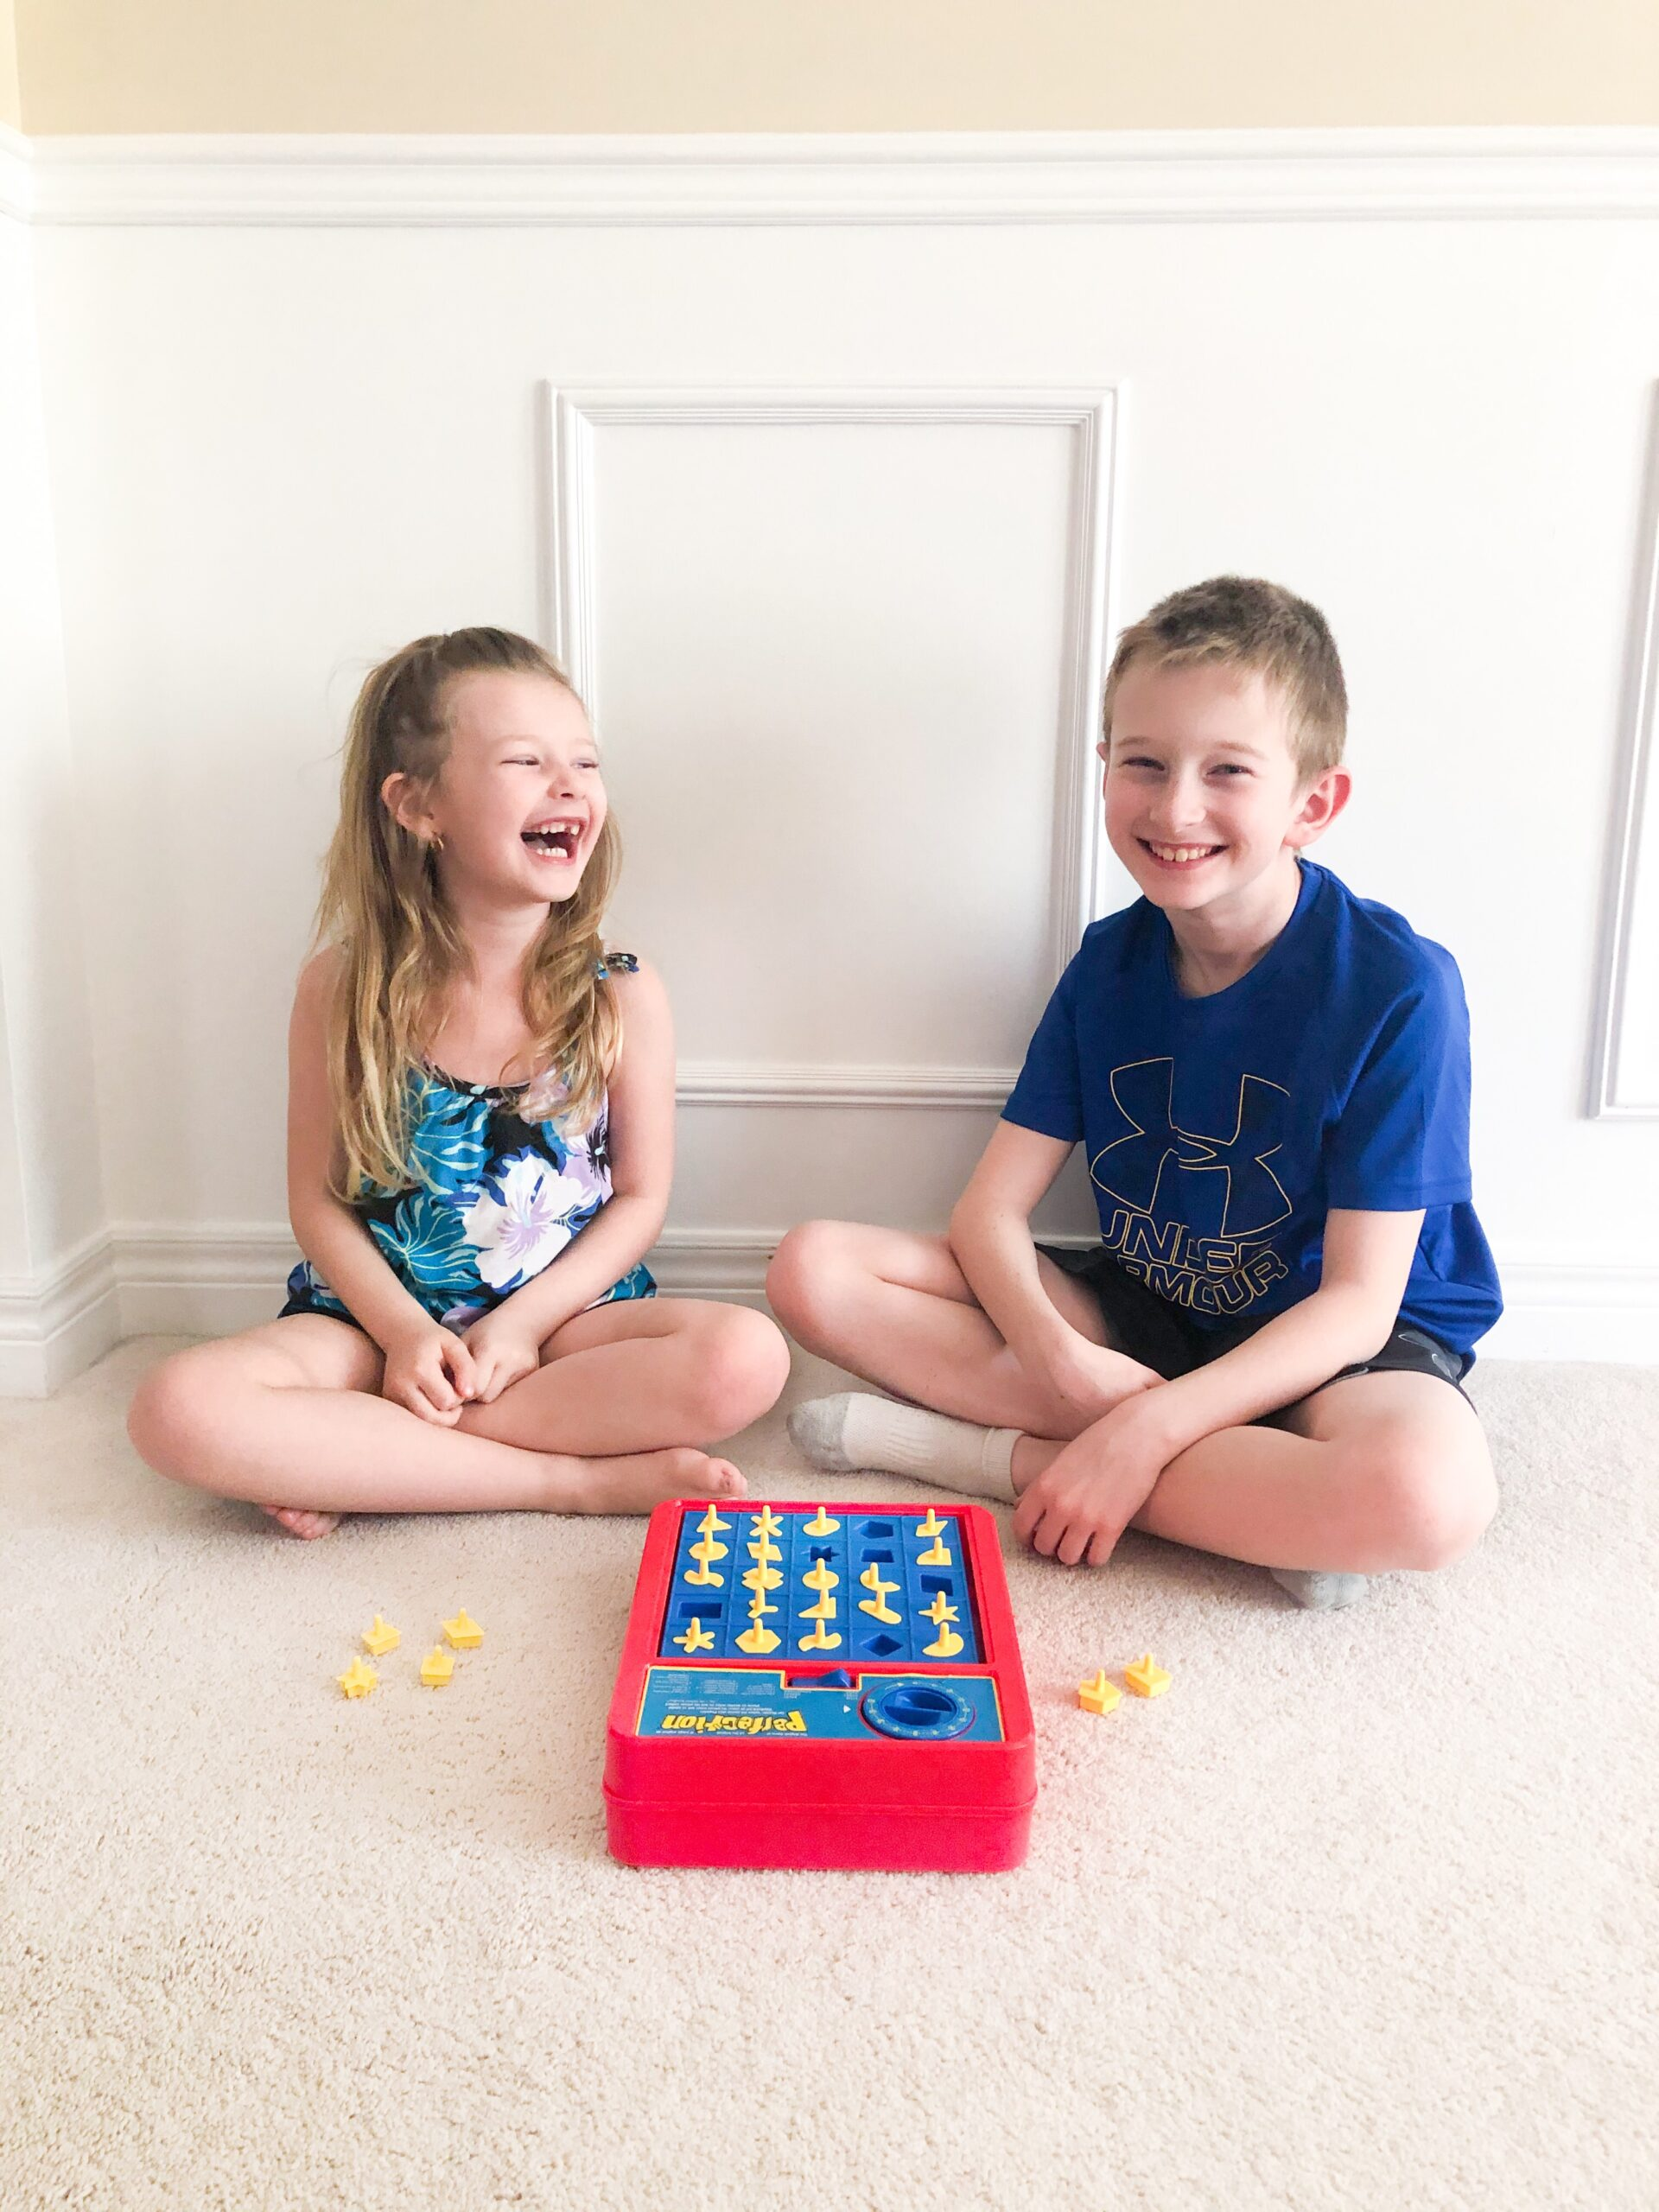 Hasbro Perfection Game Review on Livin Life with Style